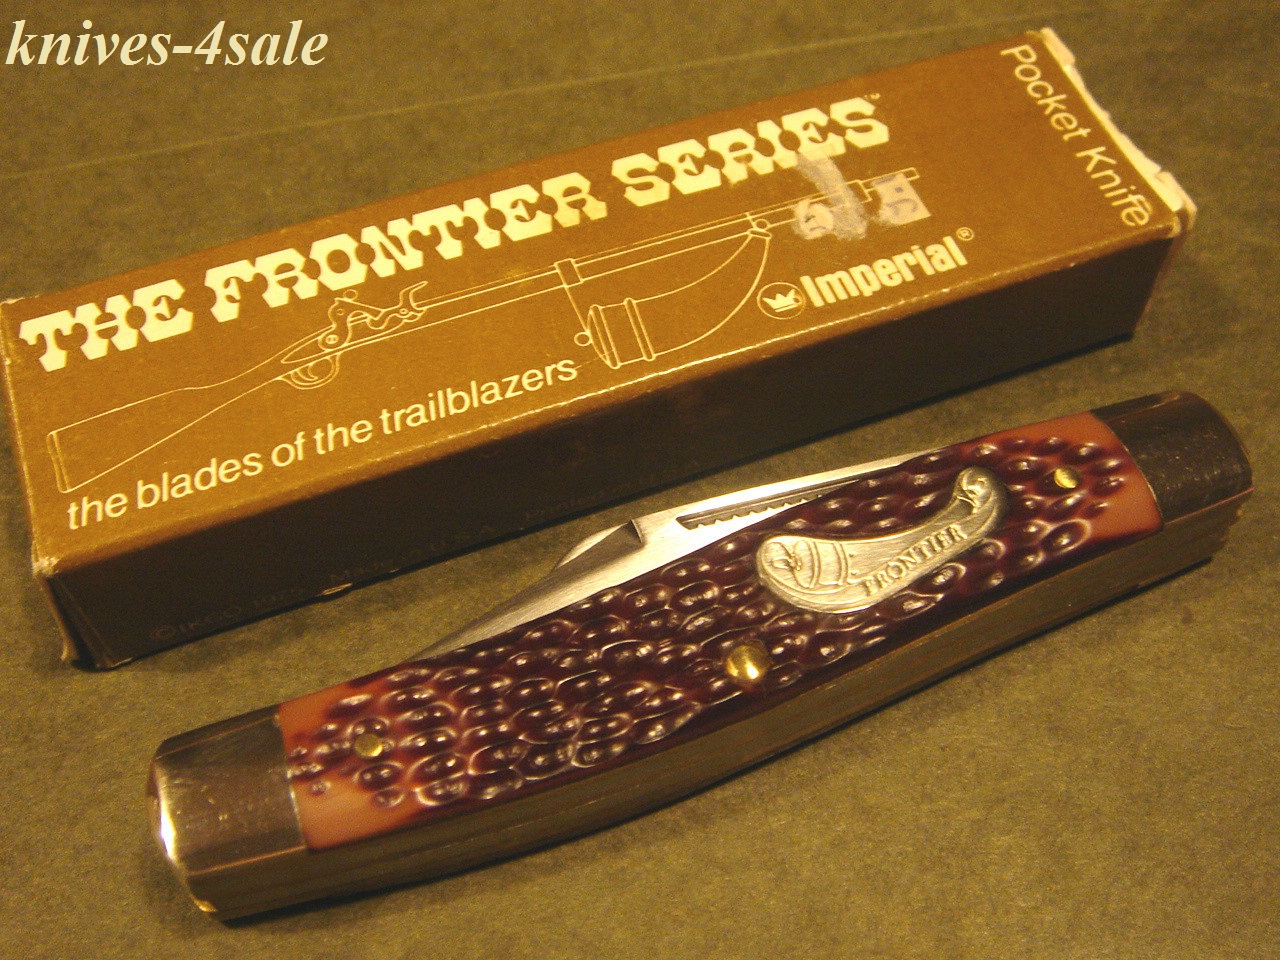 knives-4sale: Imperial Frontier USA #4431 Stockman Powder Horn